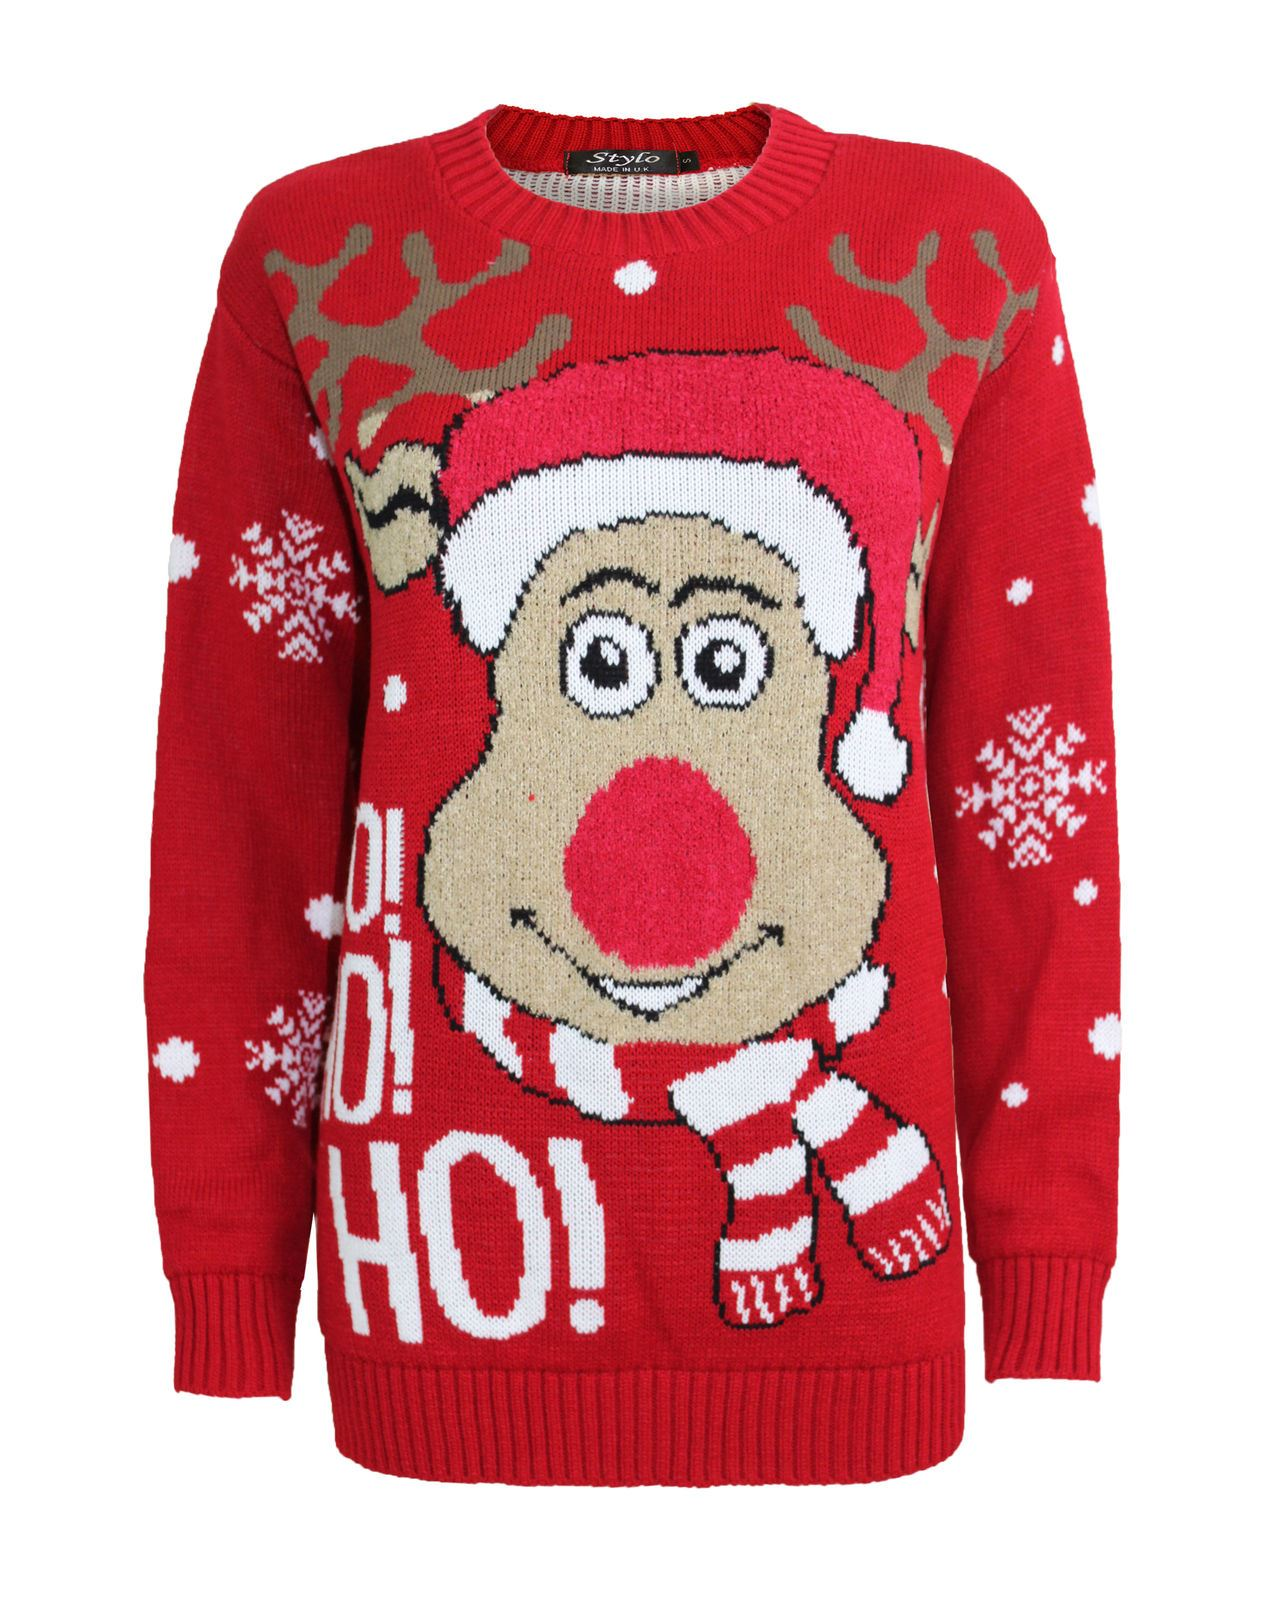 Free Christmas jumper pattern from Merry Christmas Sweaters to Knit! Save the Children and Search Press have an early Christmas present for you: this cute Snowman sweater pattern from the exciting new Merry Christmas Sweaters to Knit book from Sue Stratford.